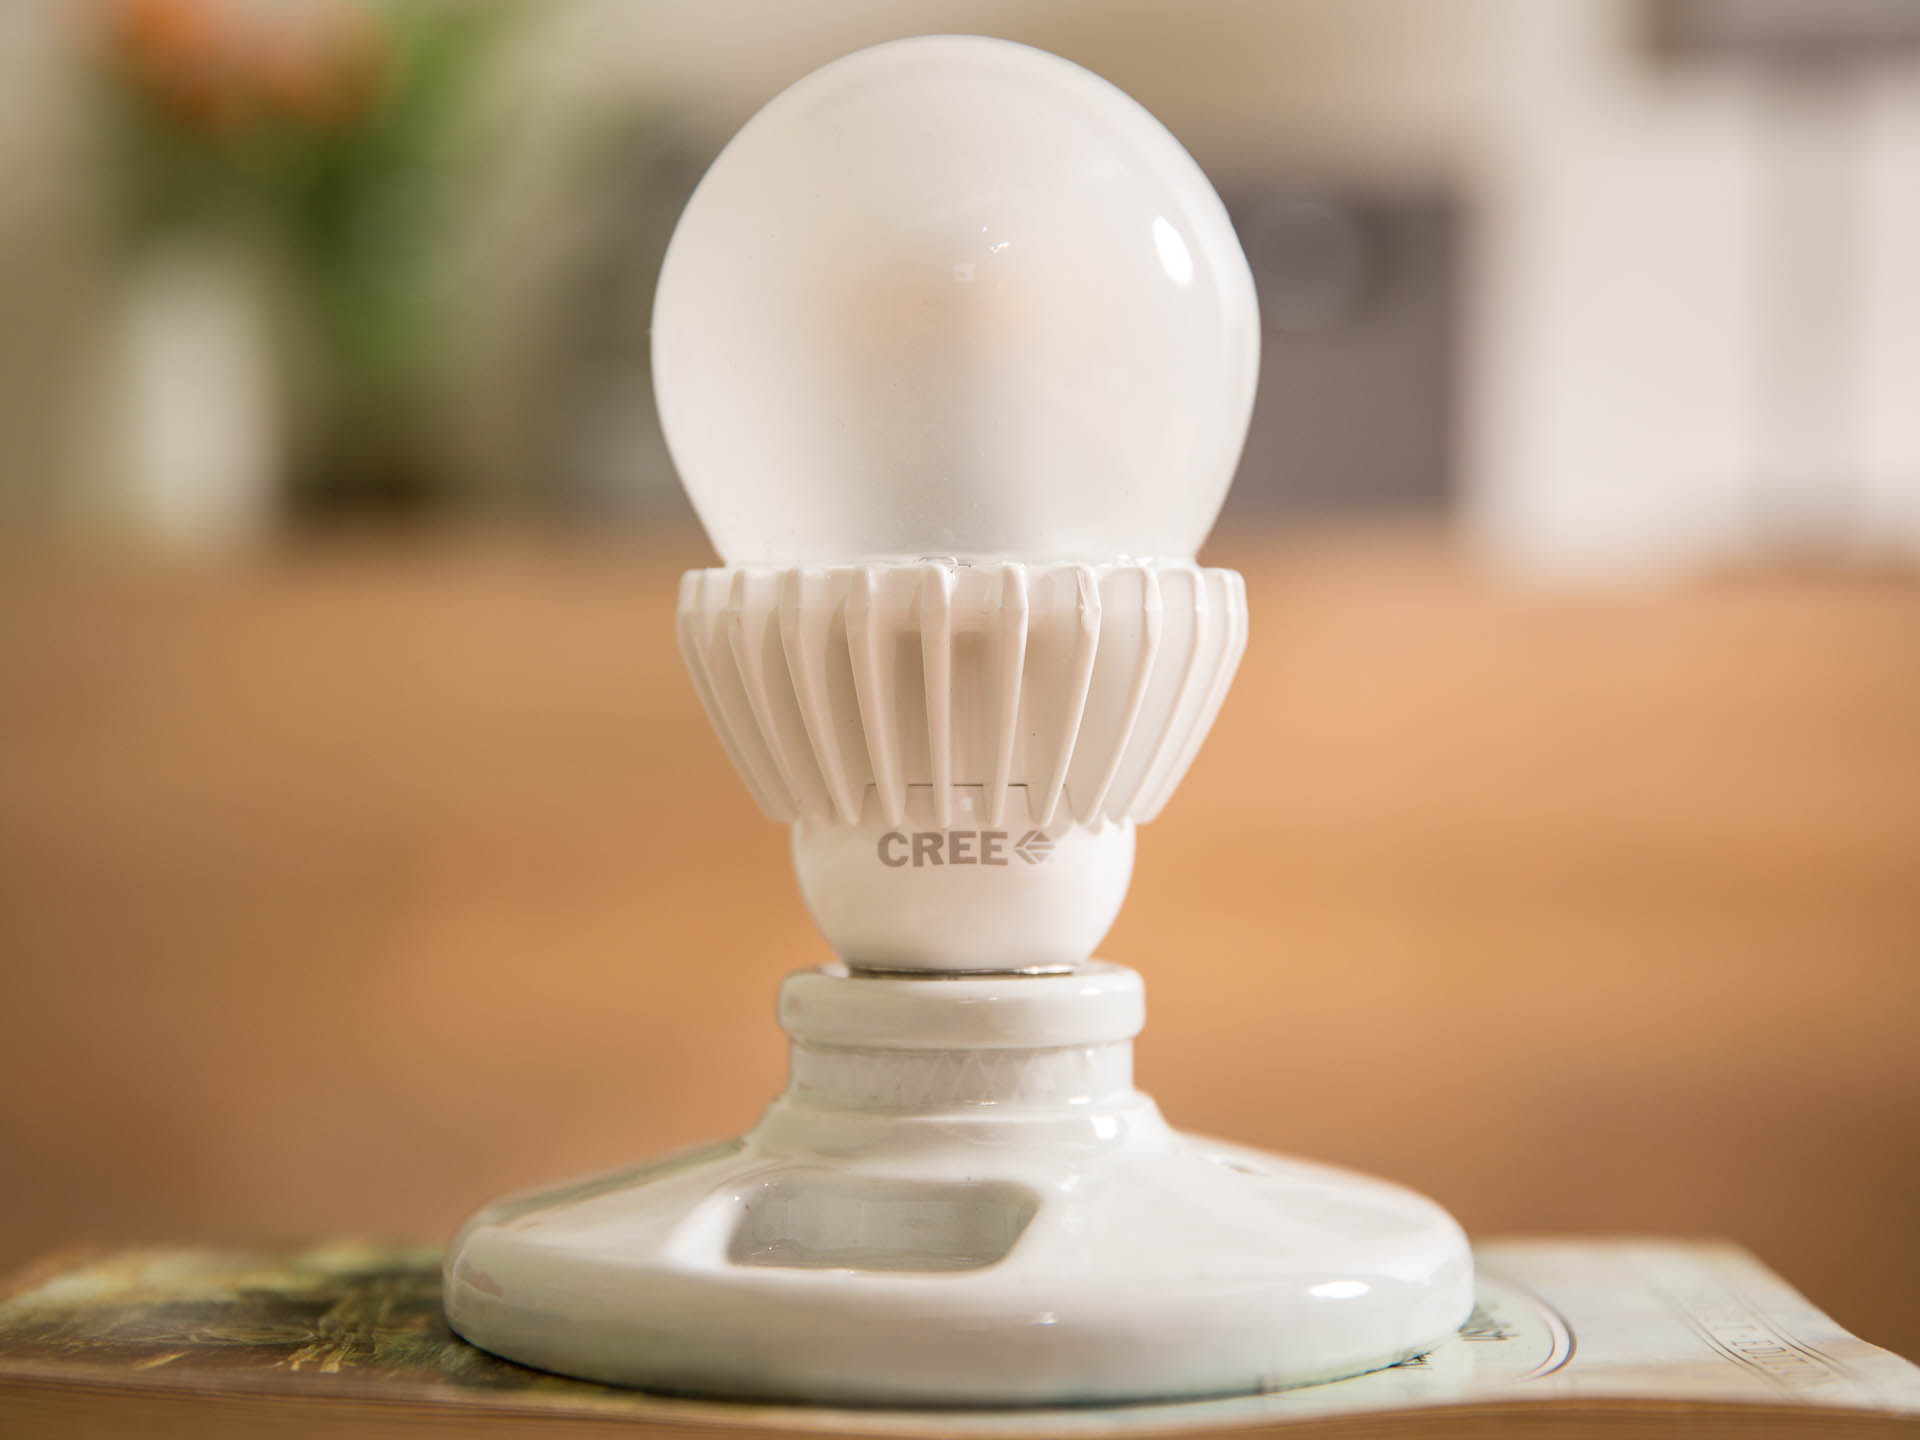 Cree's bigger, brighter LED holds up to strong competition